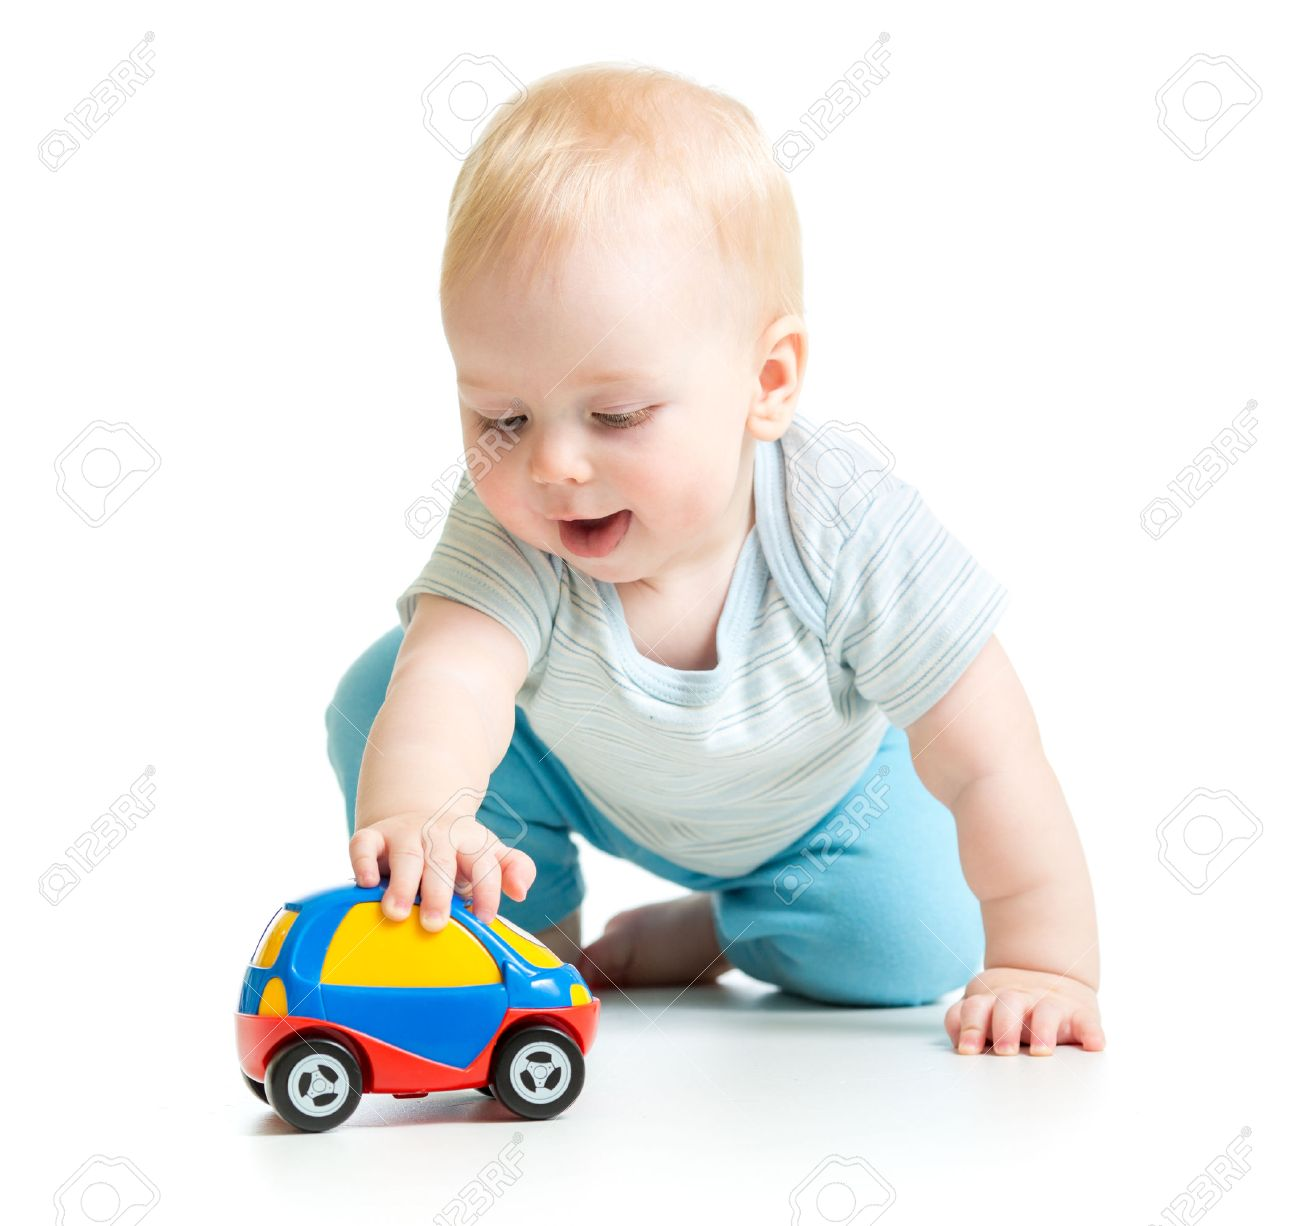 Baby Boy Toddler Playing With Toy Car Isolated Stock Photo Picture